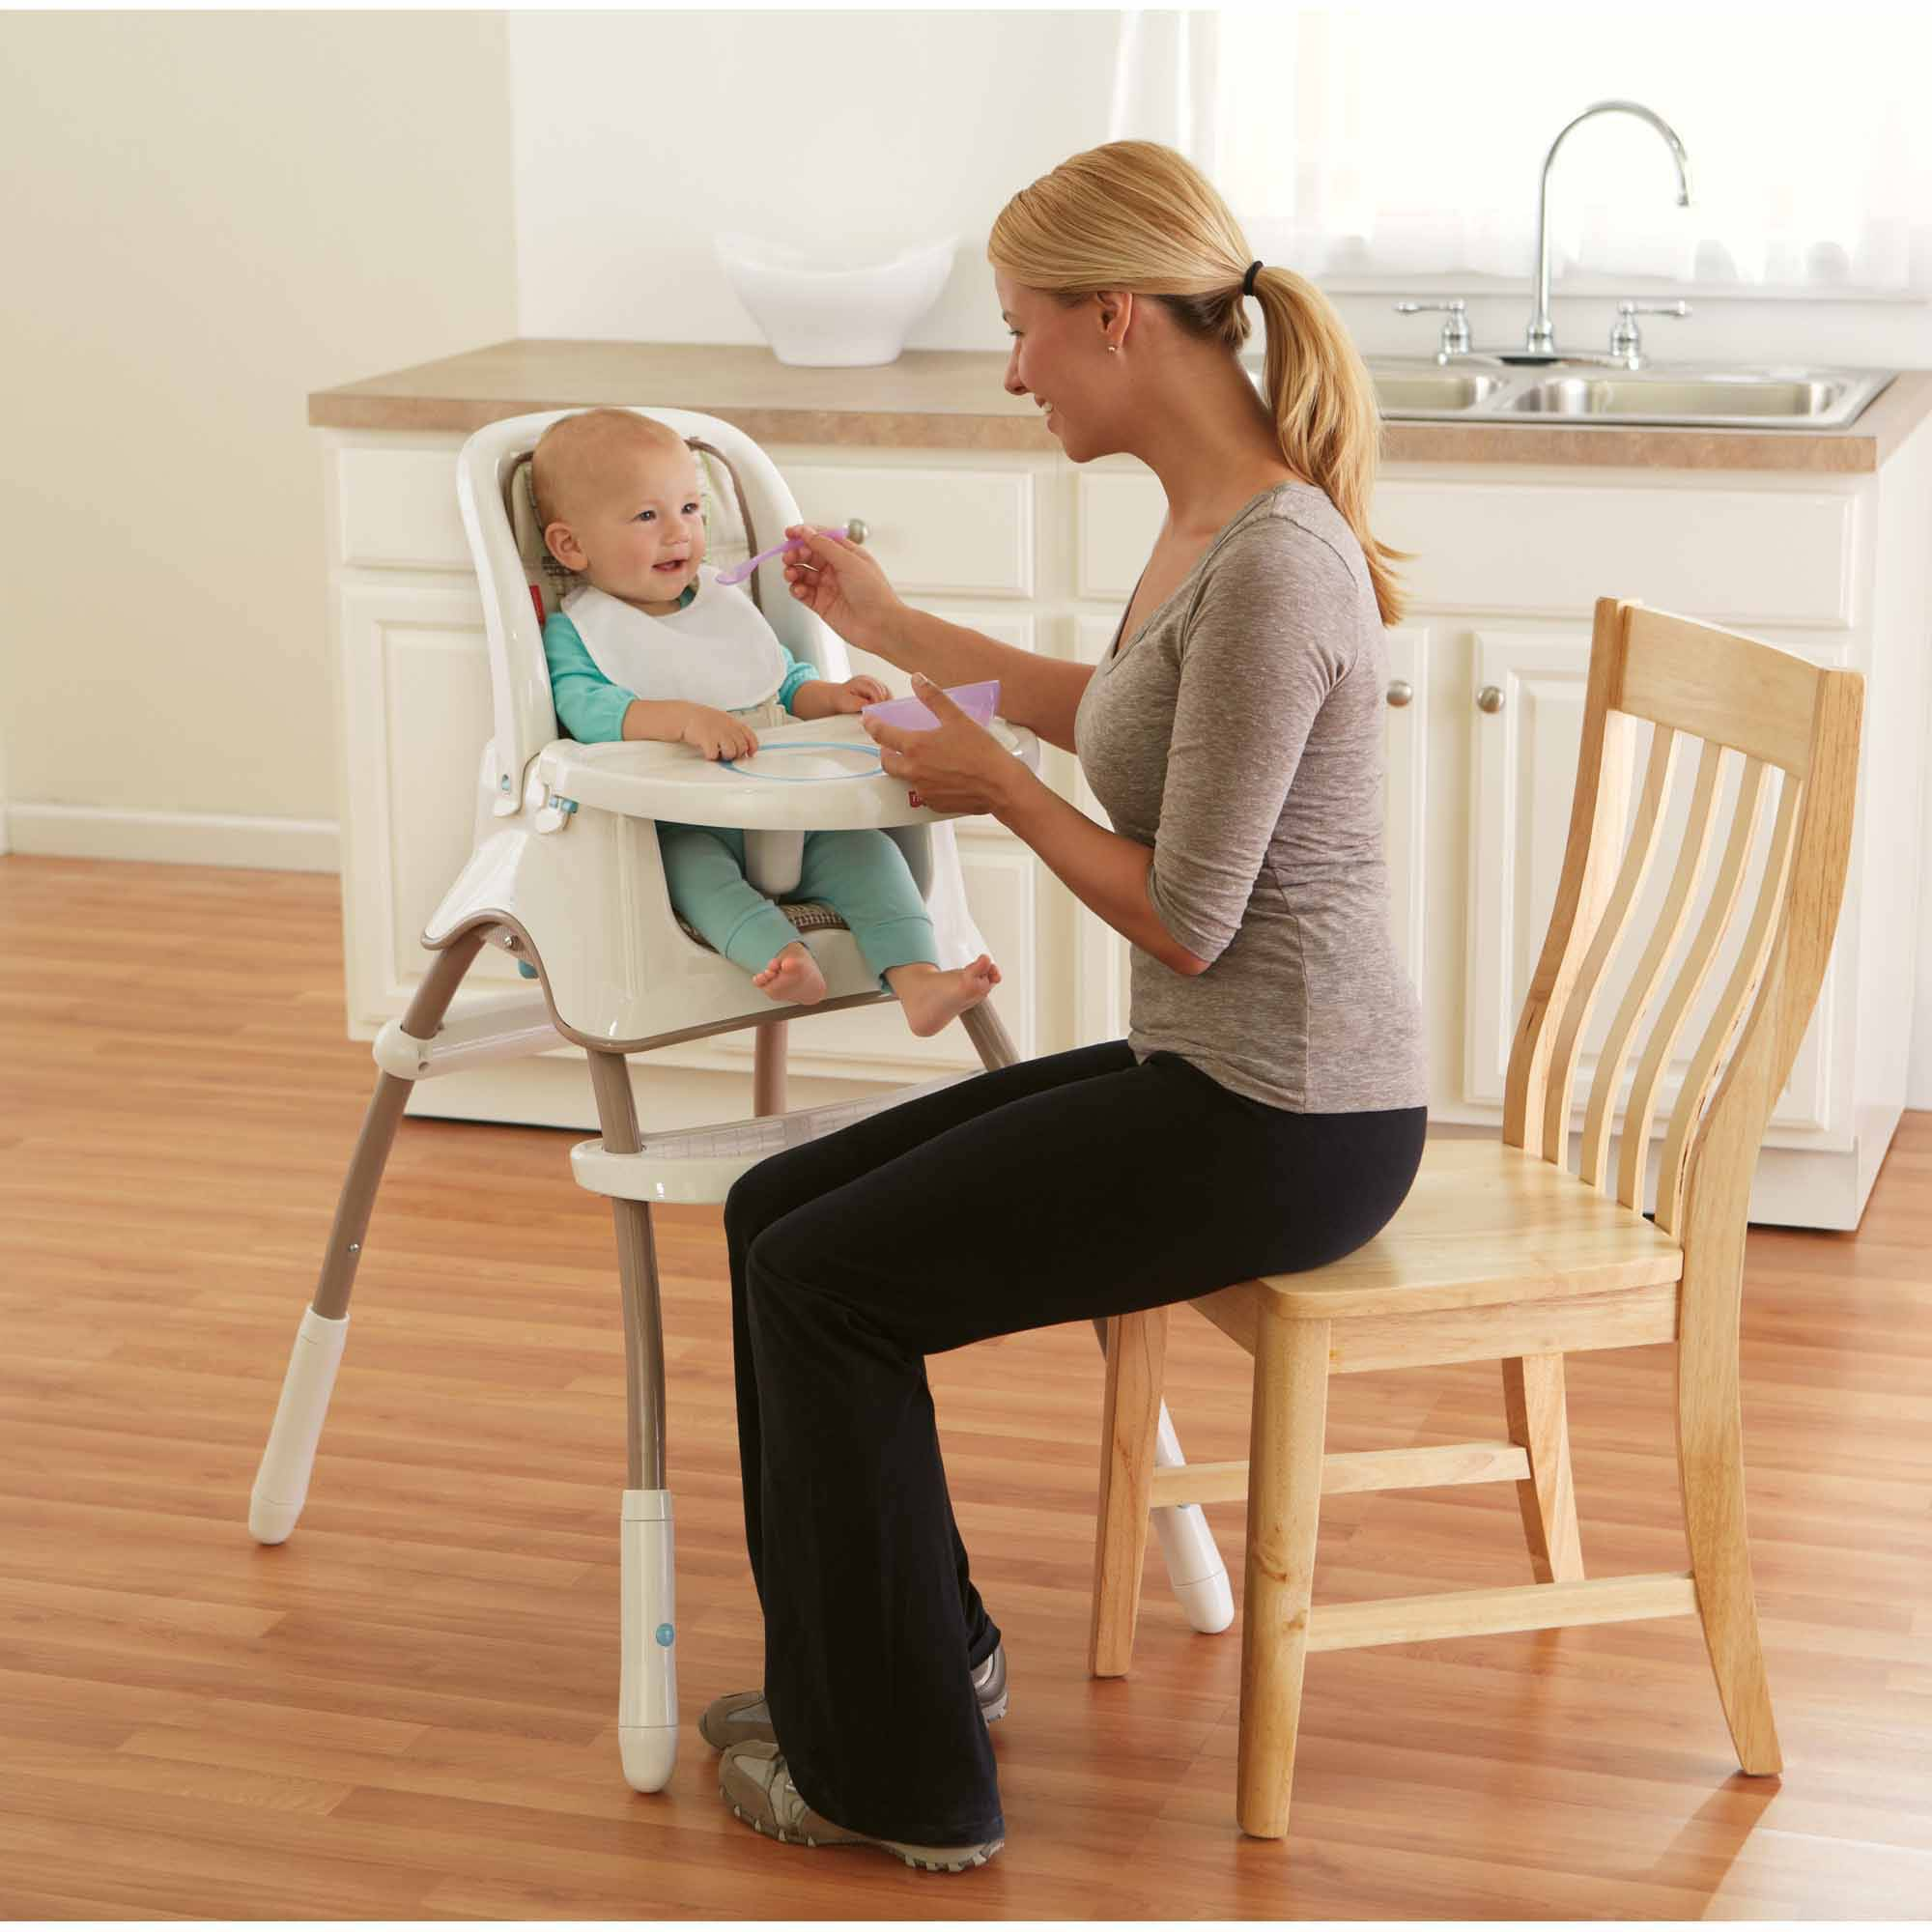 Fisher price high chair recall - Fisher Price High Chair Recall